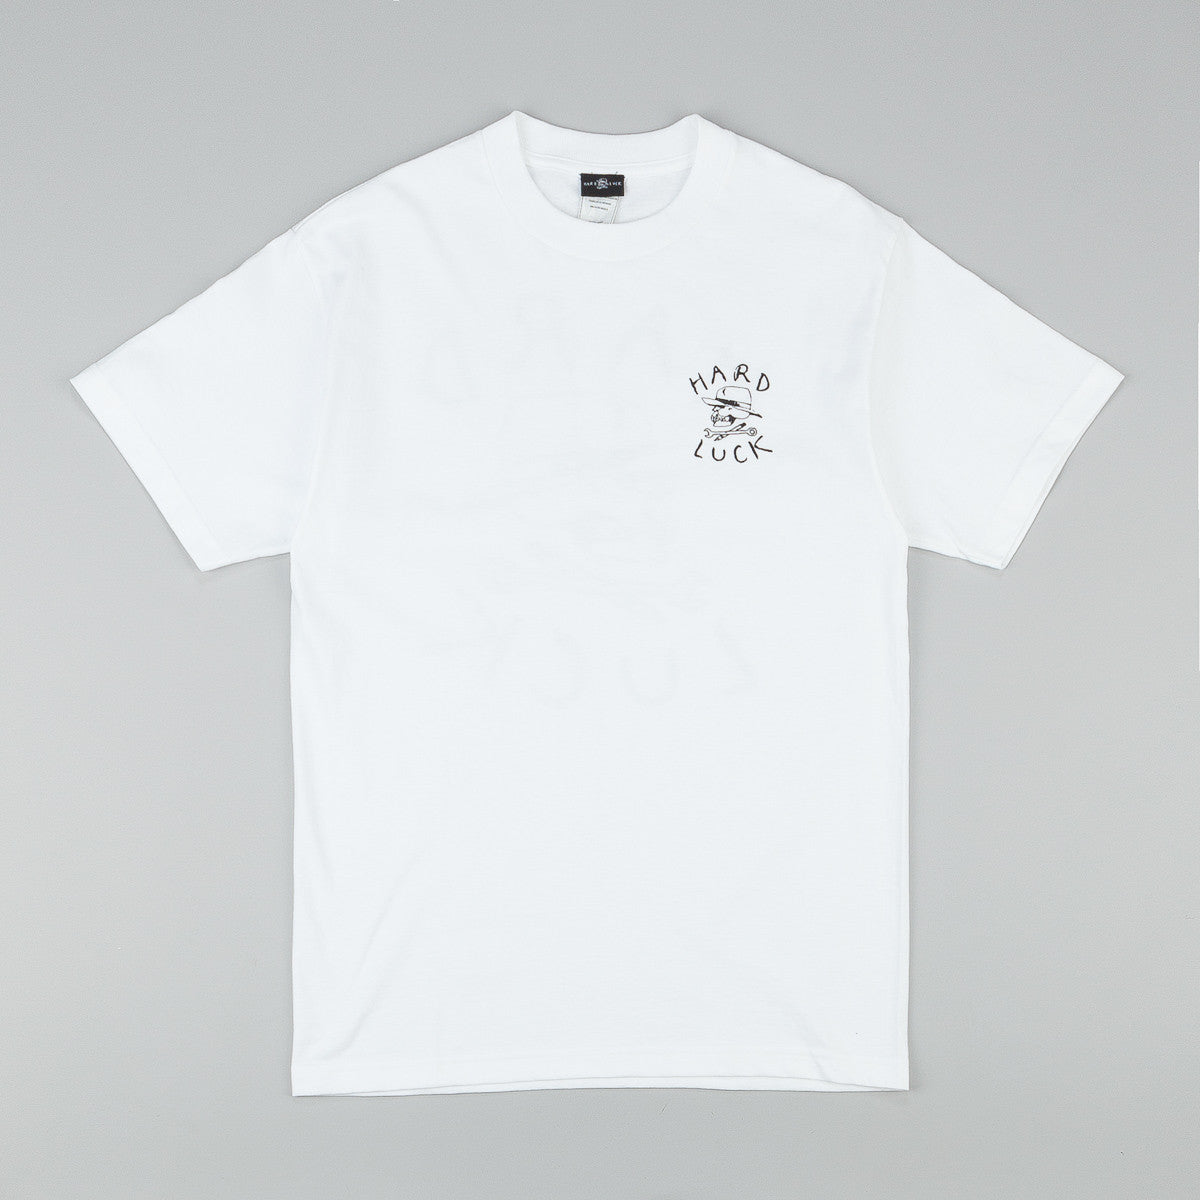 Hard Luck T Shirt White